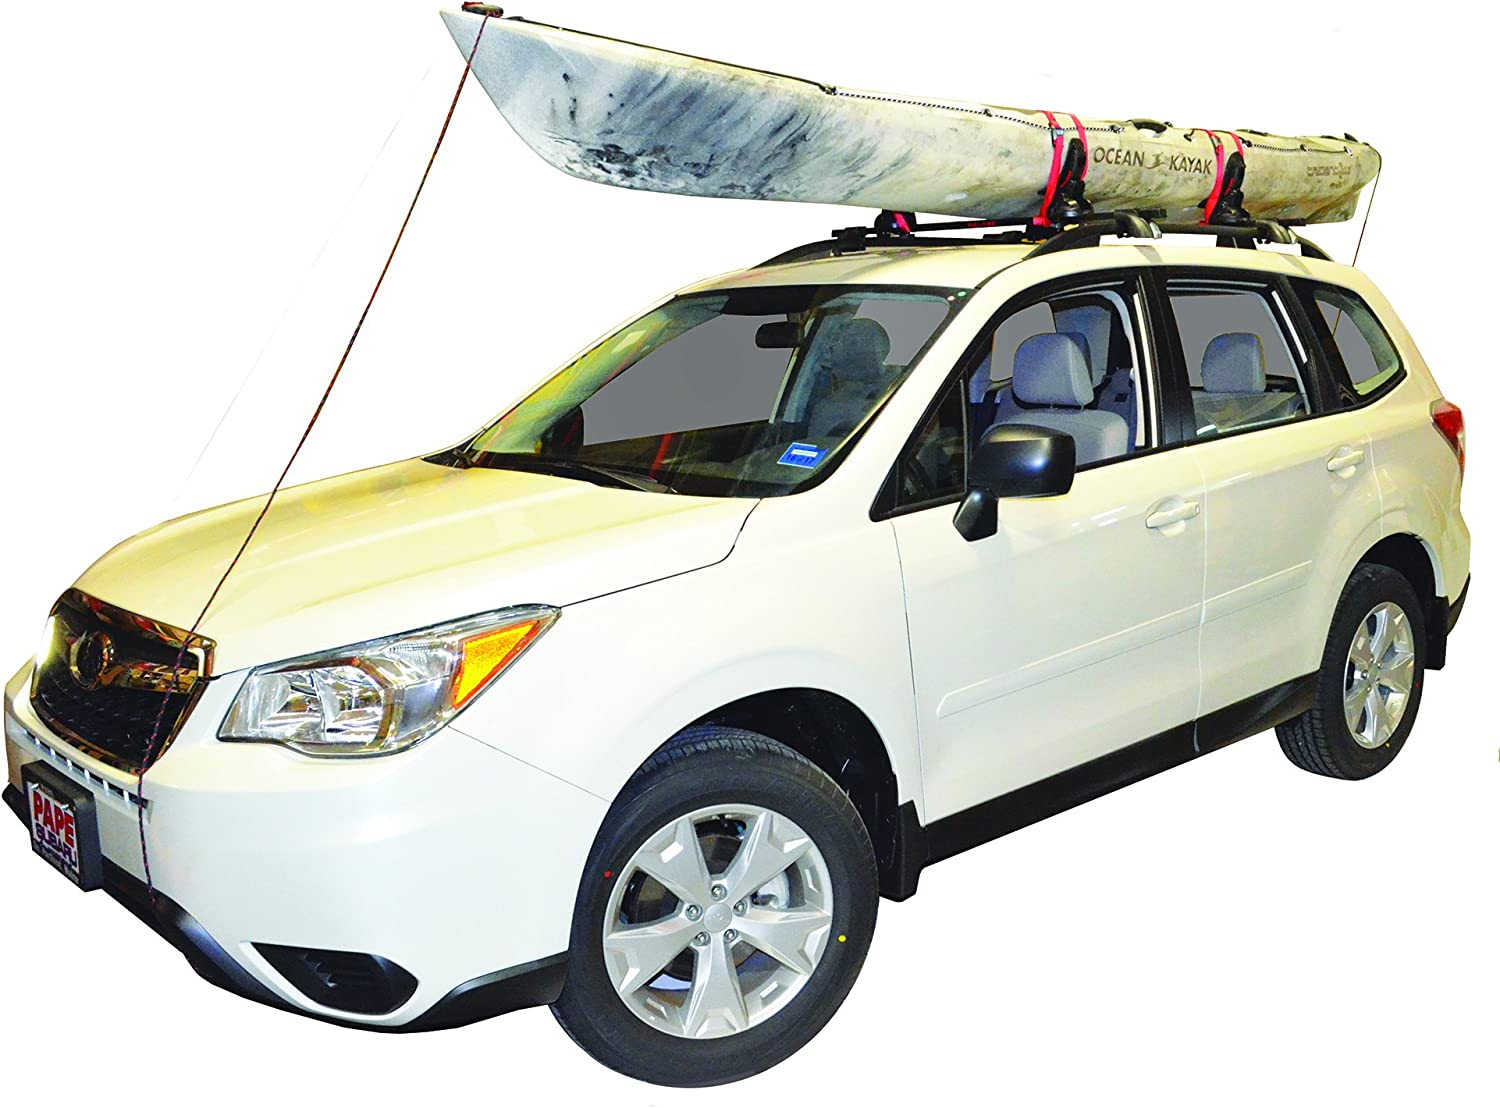 with Bow and Stern Lines Set of 4 Malone Saddle Up Pro Universal Car Rack Kayak Carrier